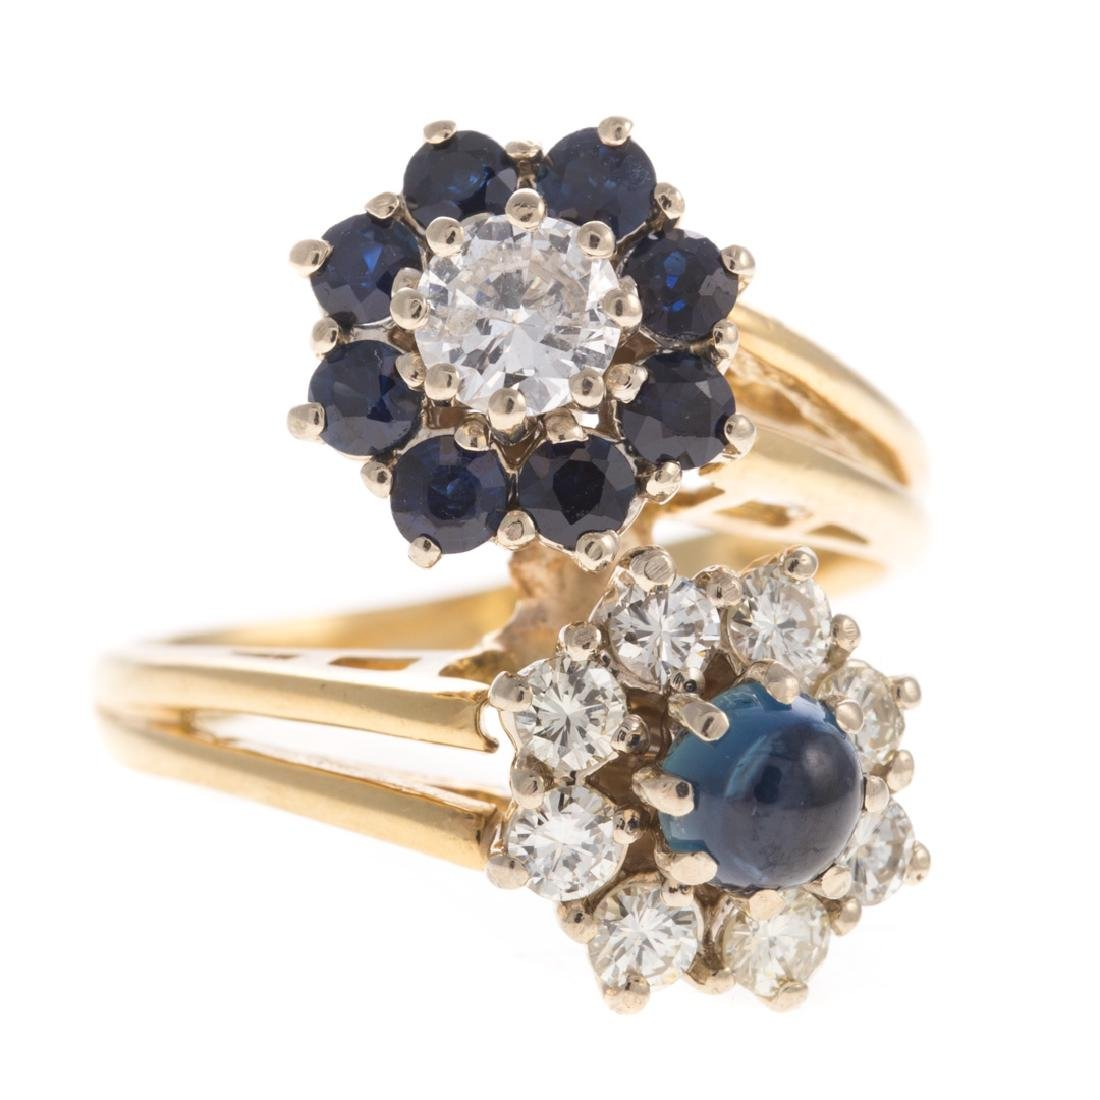 A Lady's Sapphire & Diamond Ring in 18K - 6